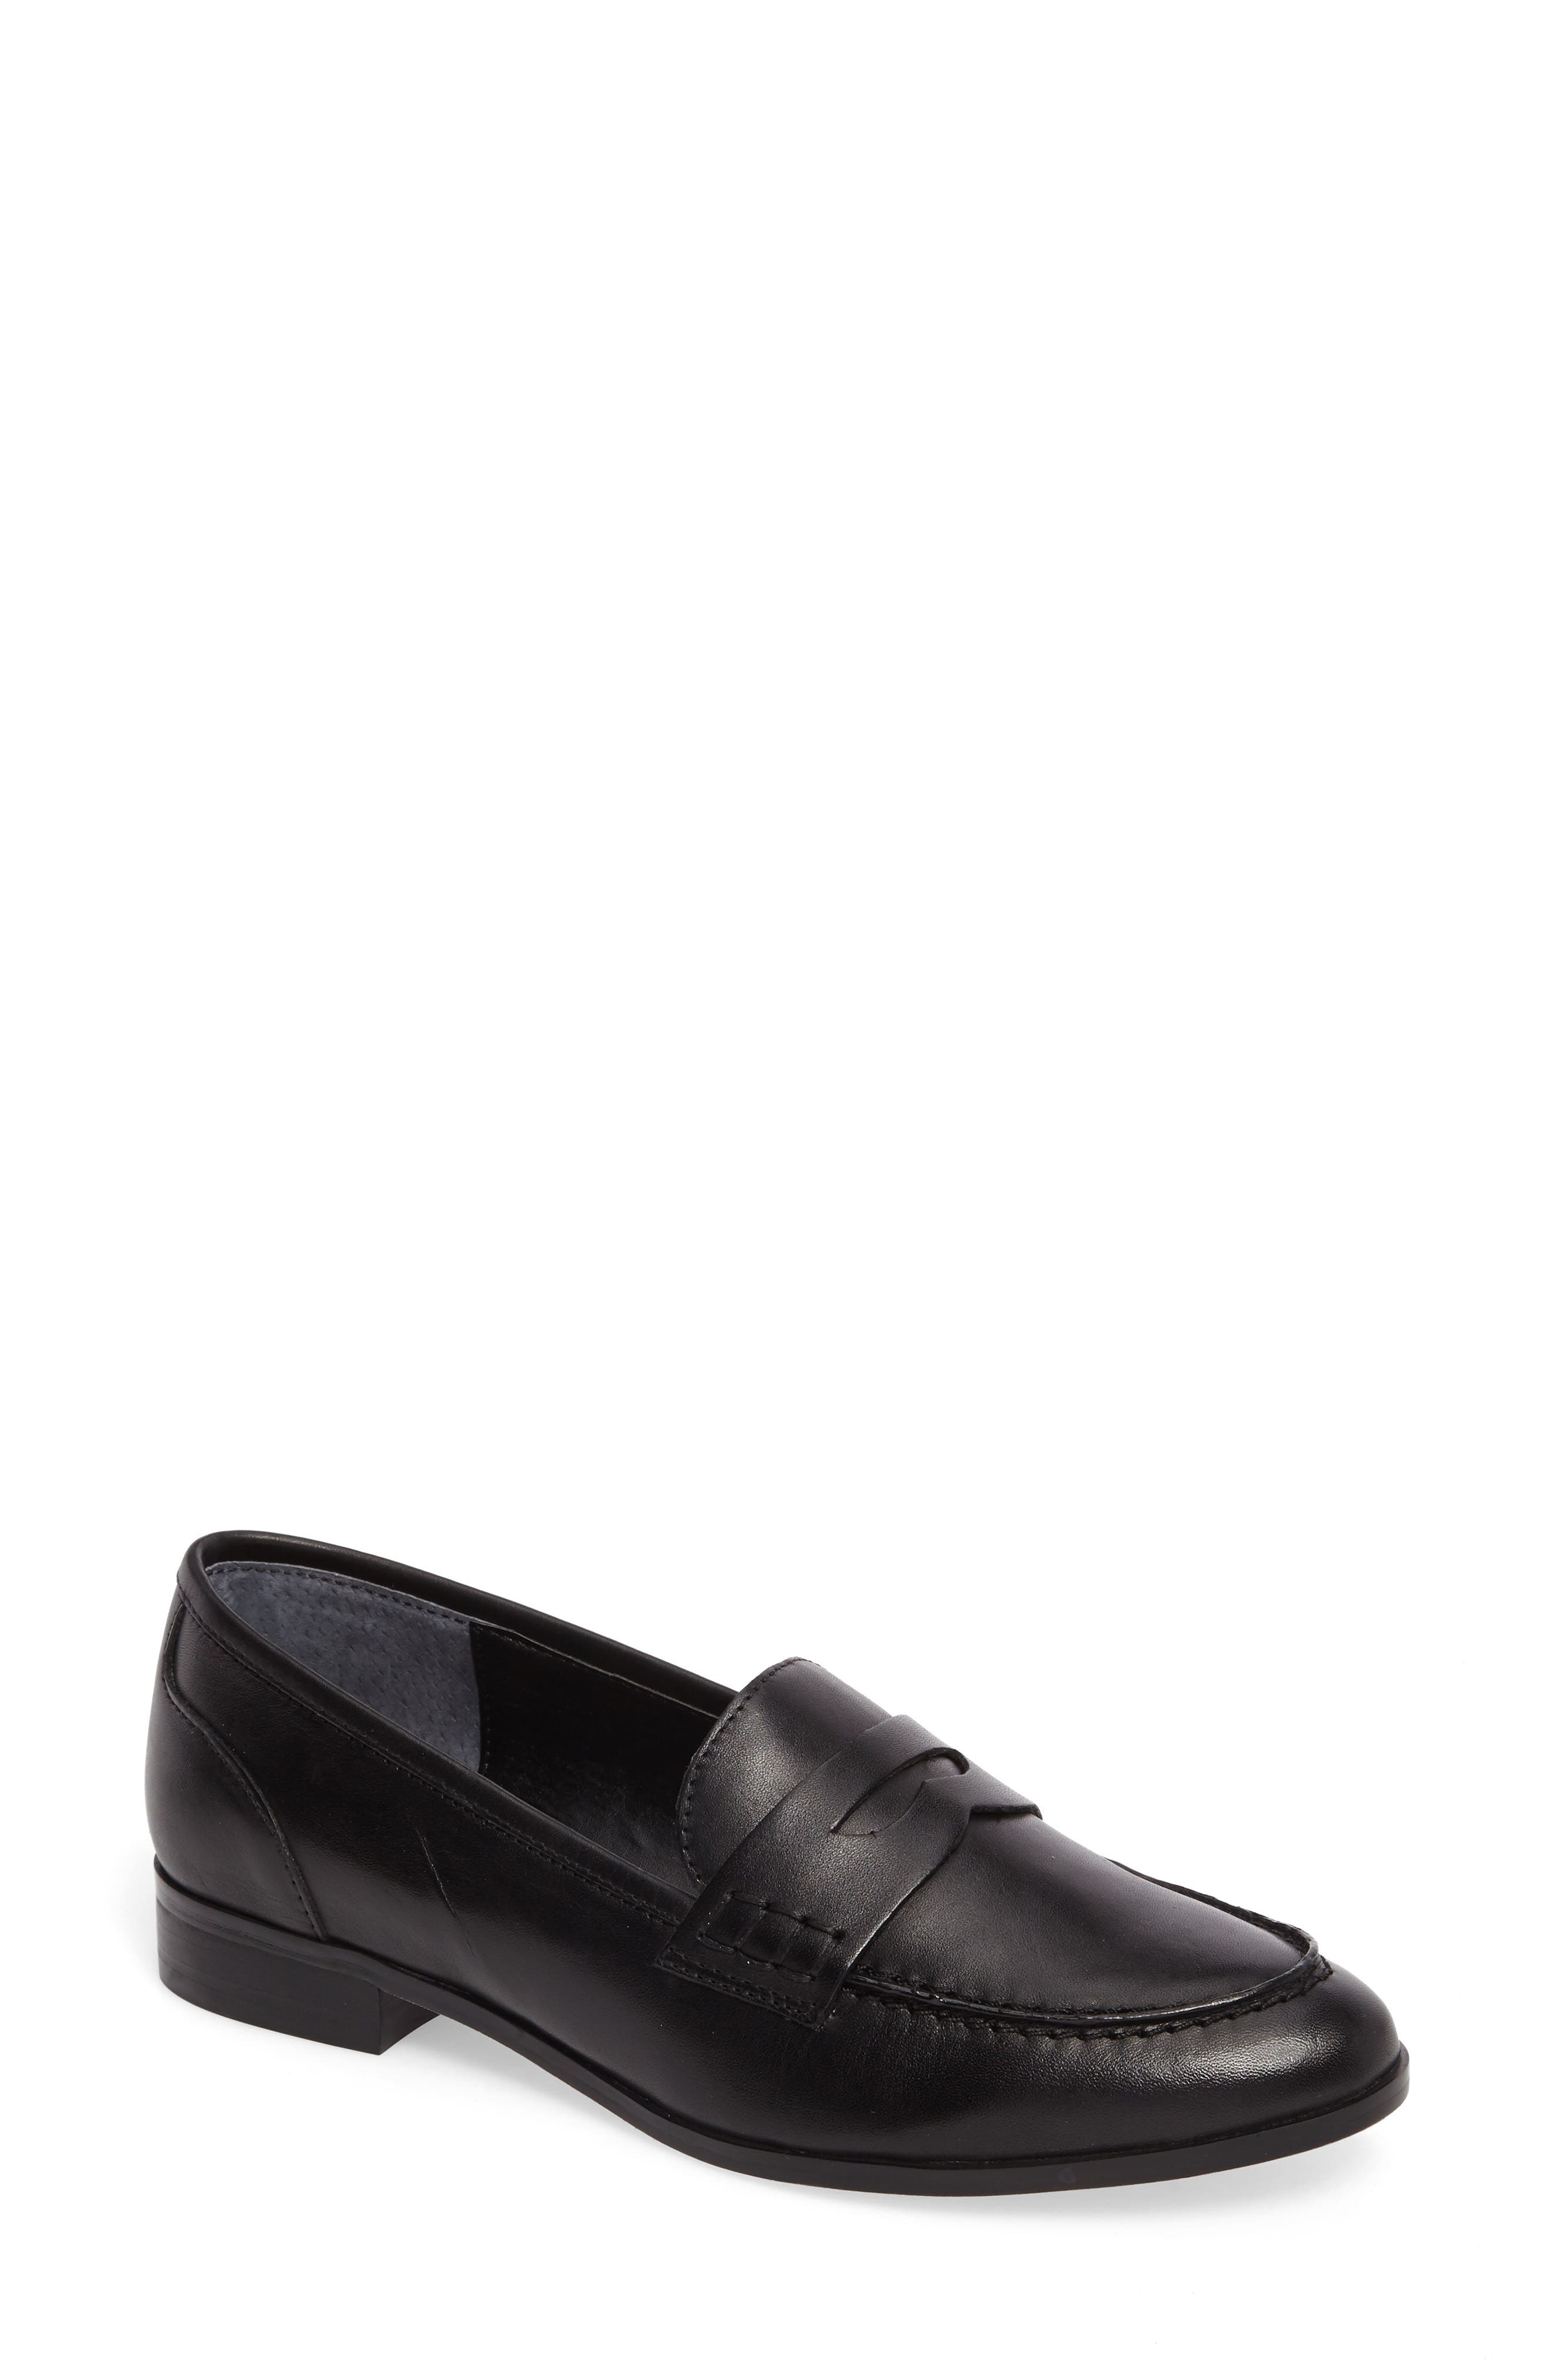 Georgie Penny Loafer,                         Main,                         color, 001